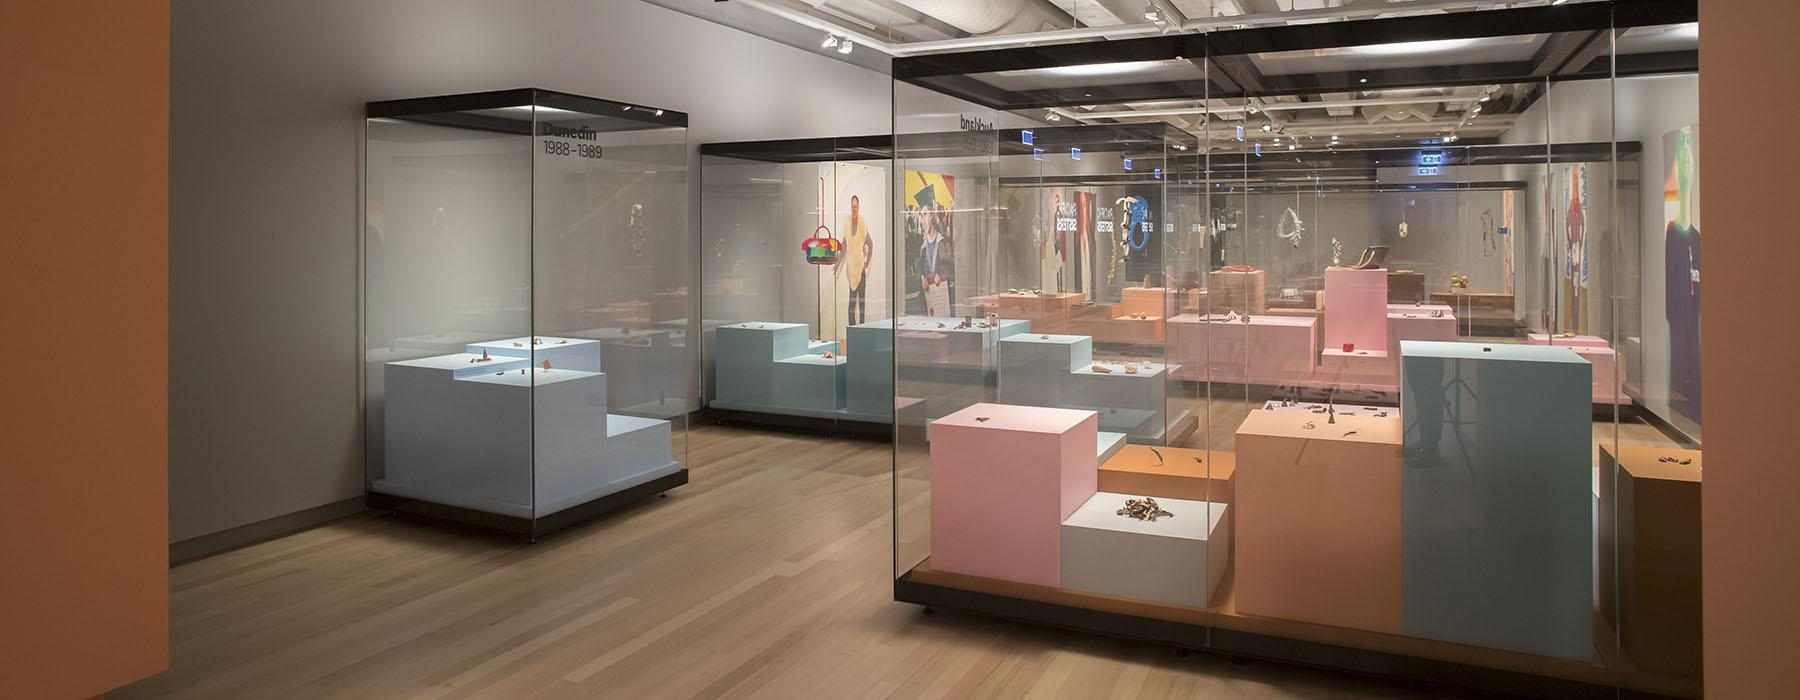 View of Lisa Walker's exhibition including multiple cabinets filled with colourful plinths and jewellery on them